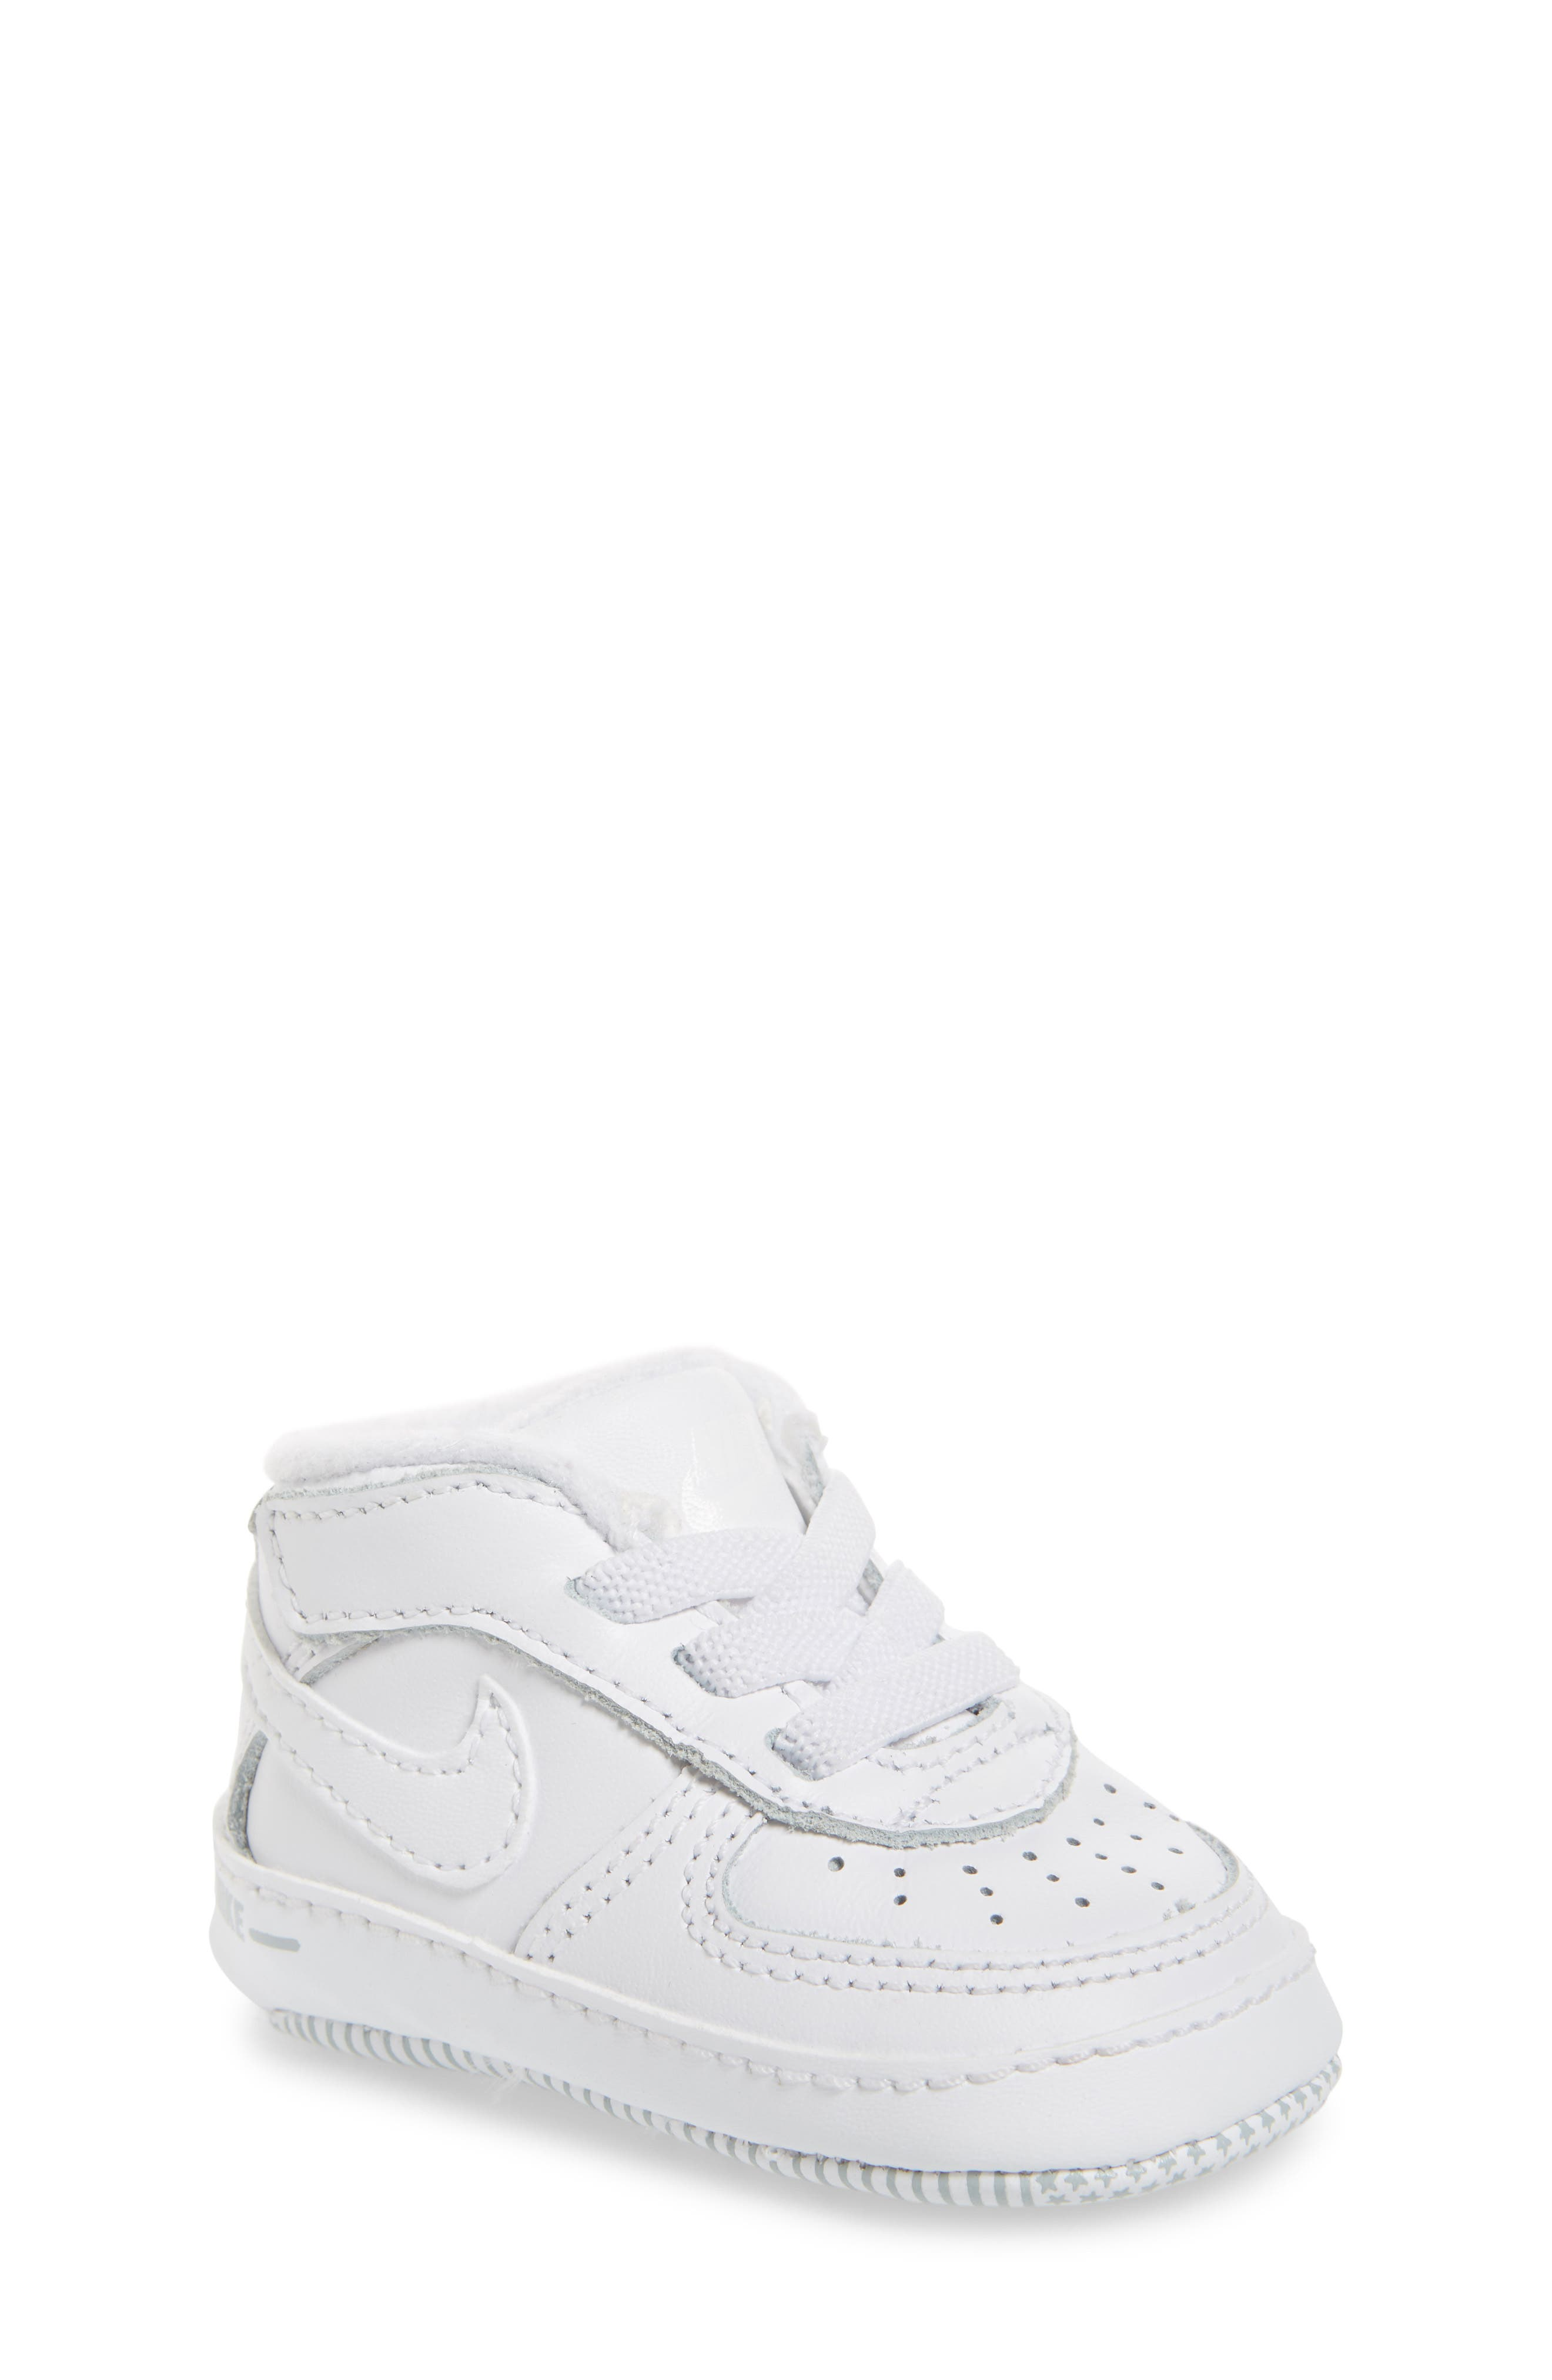 ca92f53814 Kids' Nike Shoes | Nordstrom